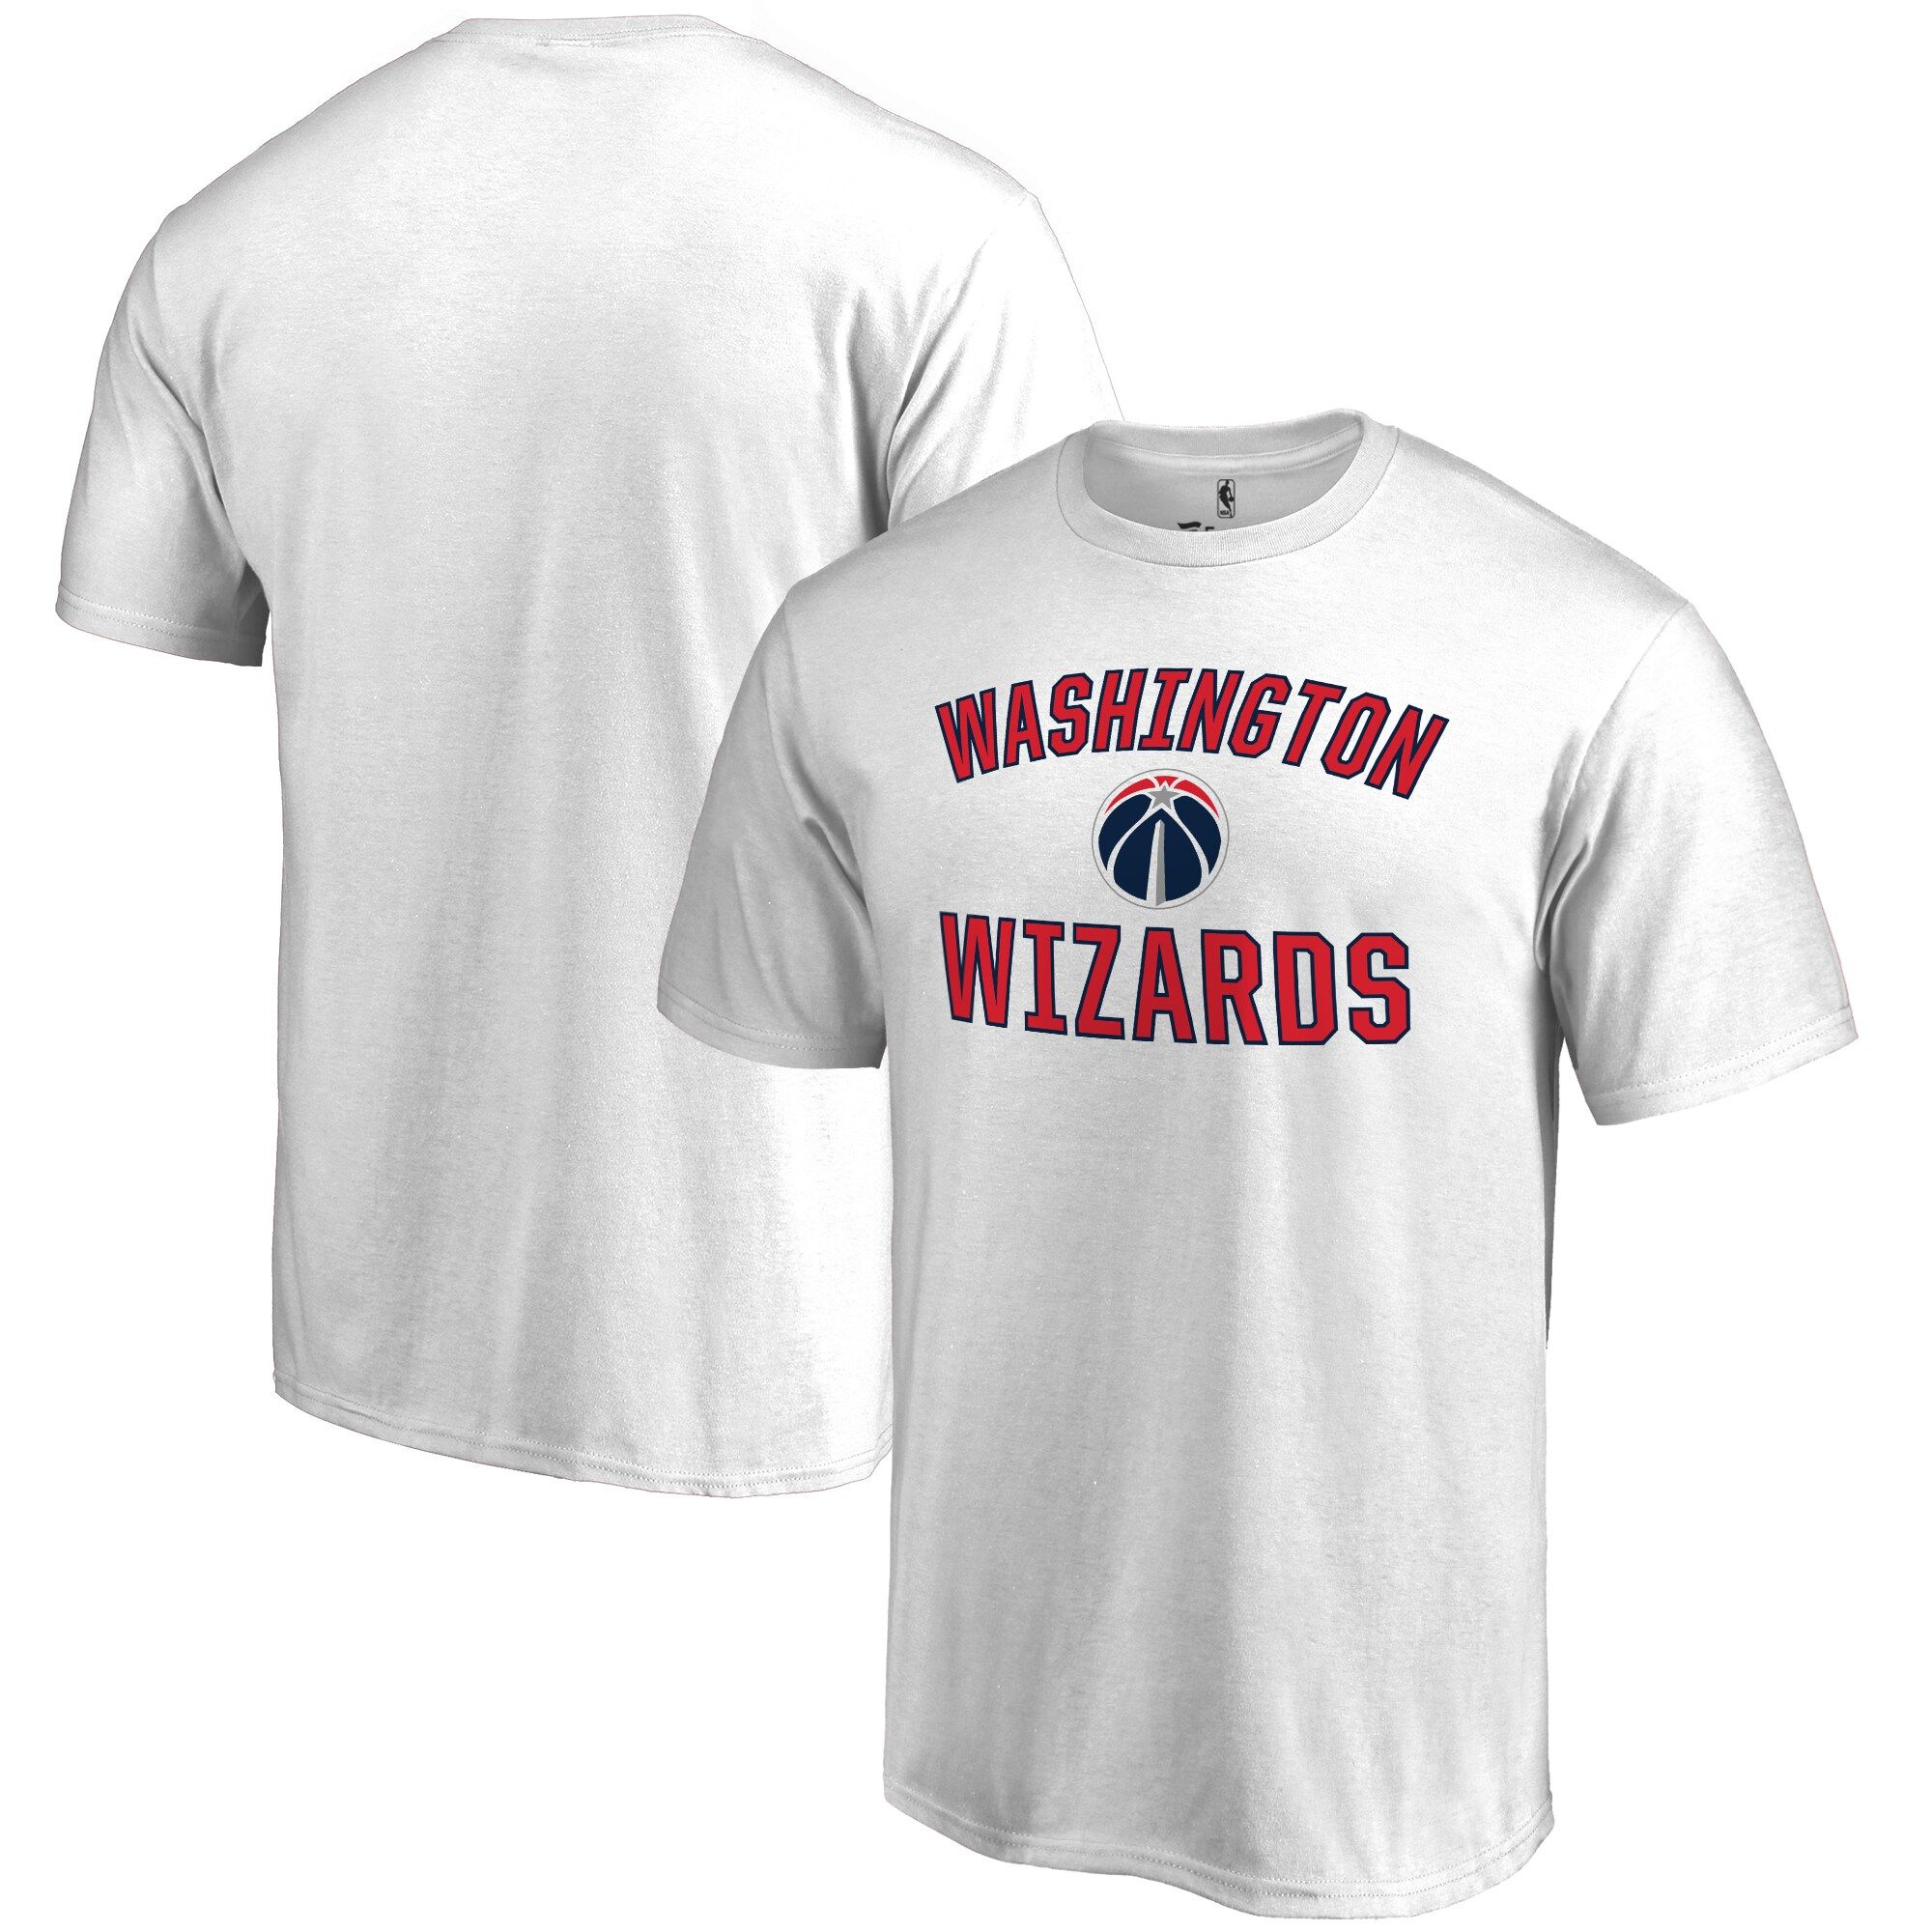 Washington Wizards Victory Arch T-Shirt - White